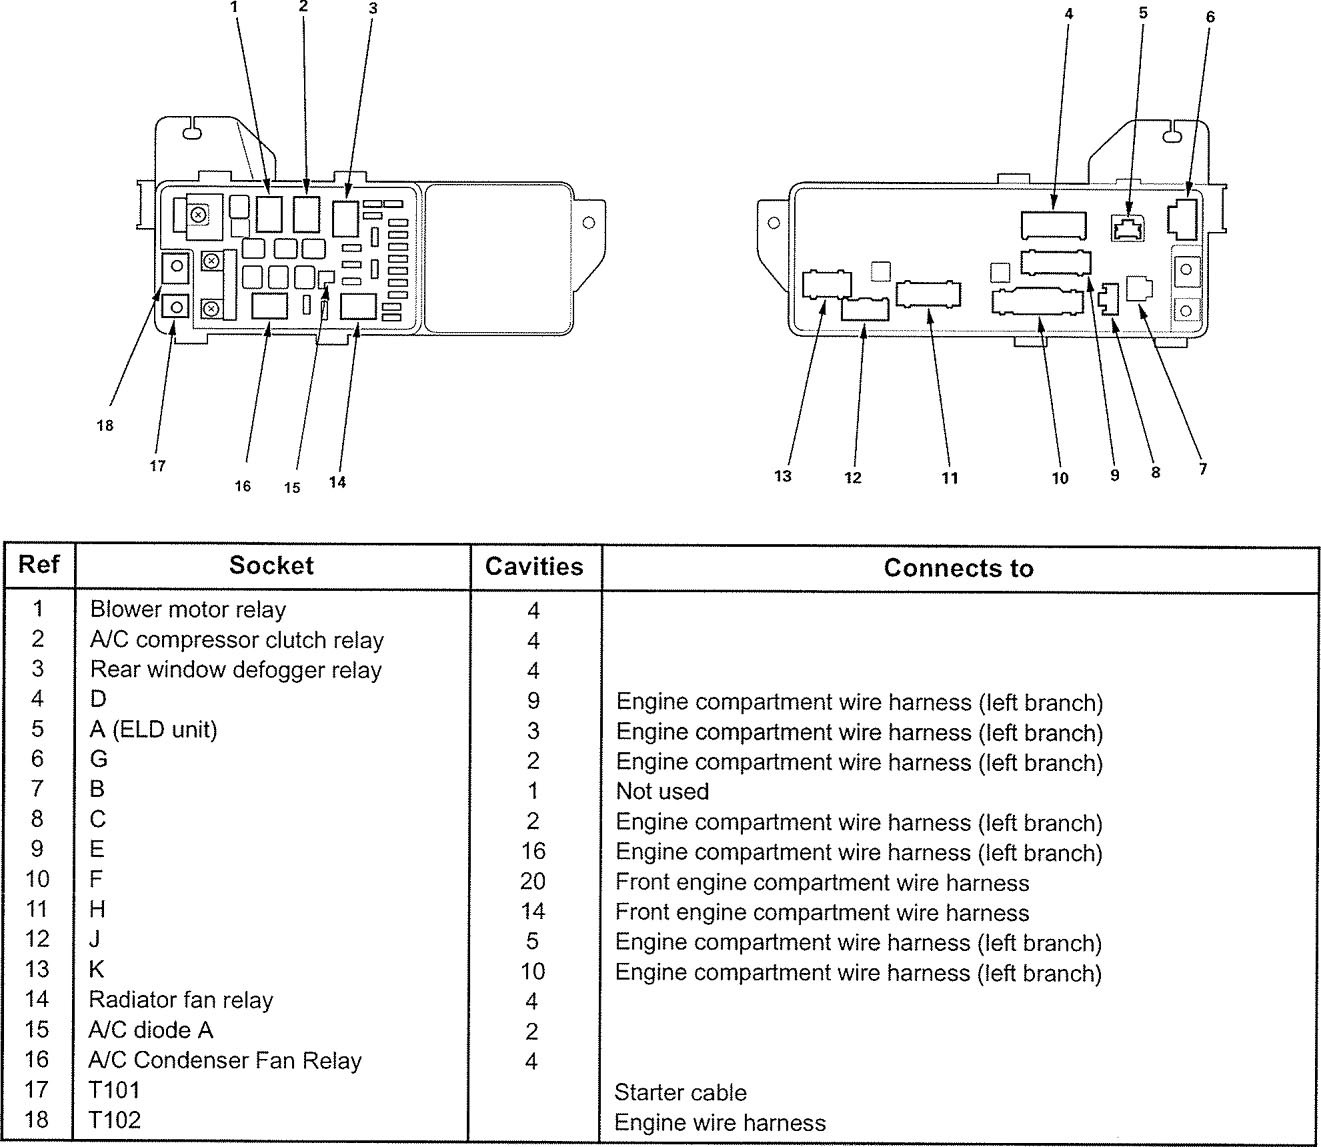 hight resolution of wiring diagrams for 2005 acura tl 33 wiring diagram 2005 acura tl door speaker wiring diagram 2005 acura tl headlight wiring diagram